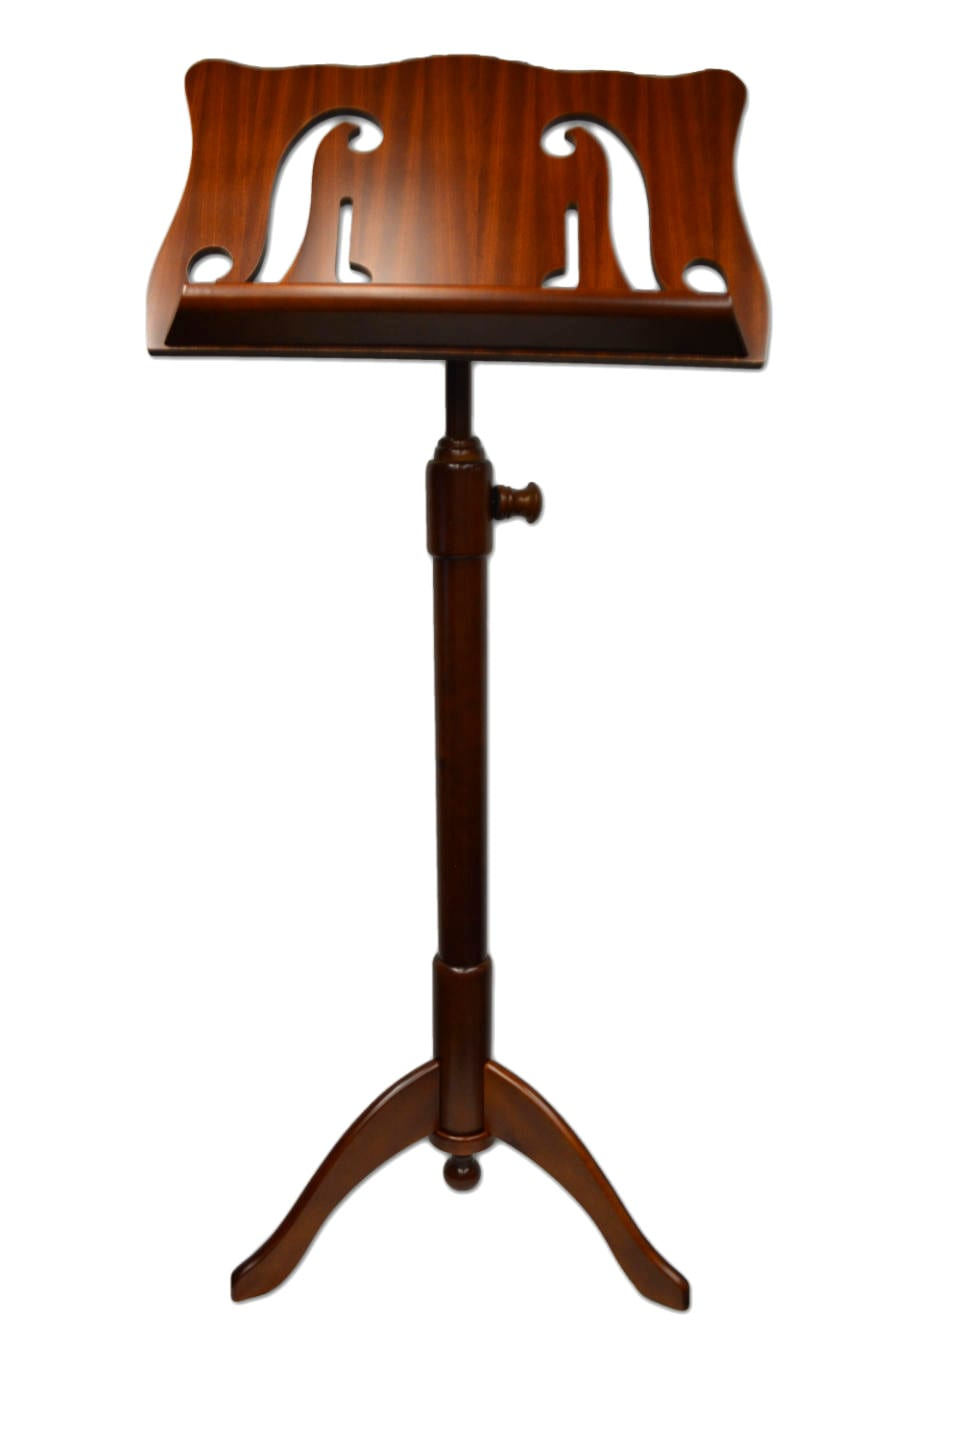 Frederick Walnut Music Stand - Violin F-Holes & Music Notes